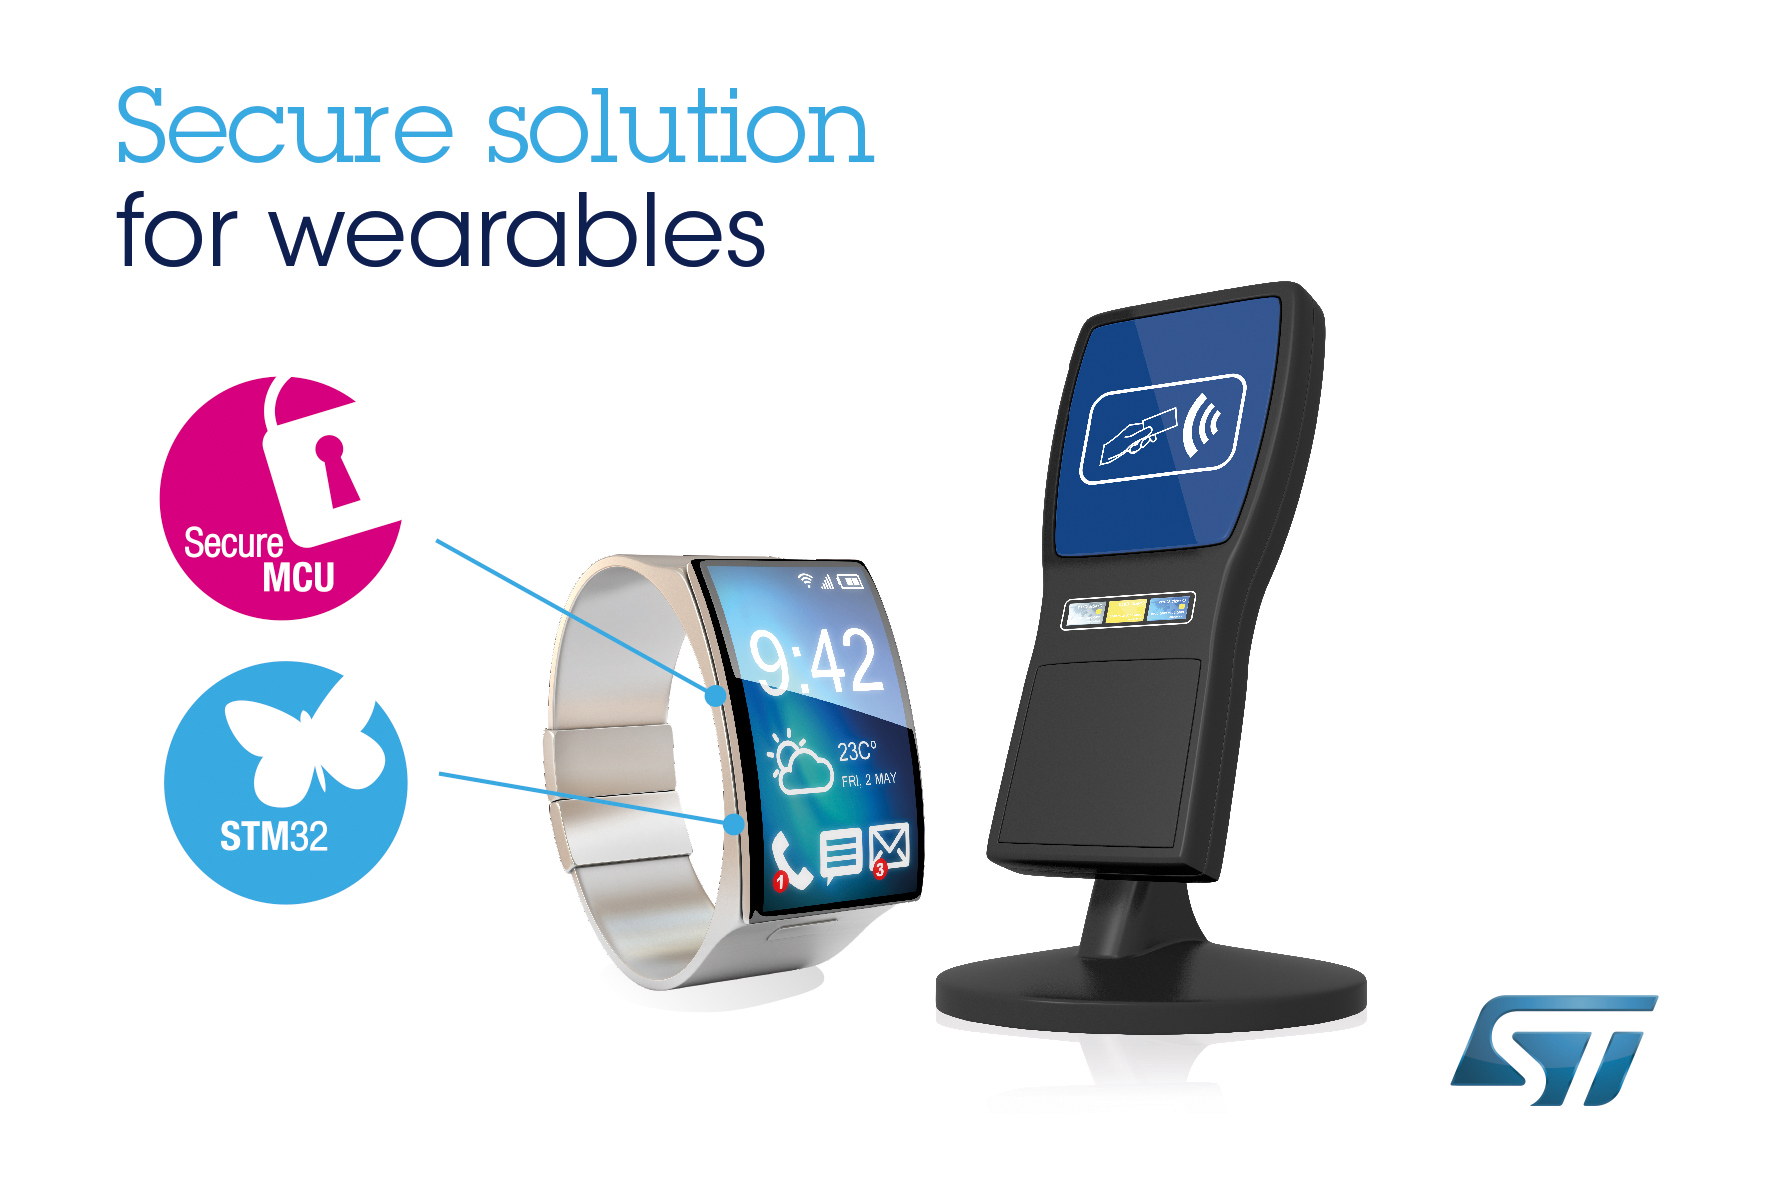 New product-development ecosystem from STMicroelectronics simplifies adding stronger security for mobile transactions